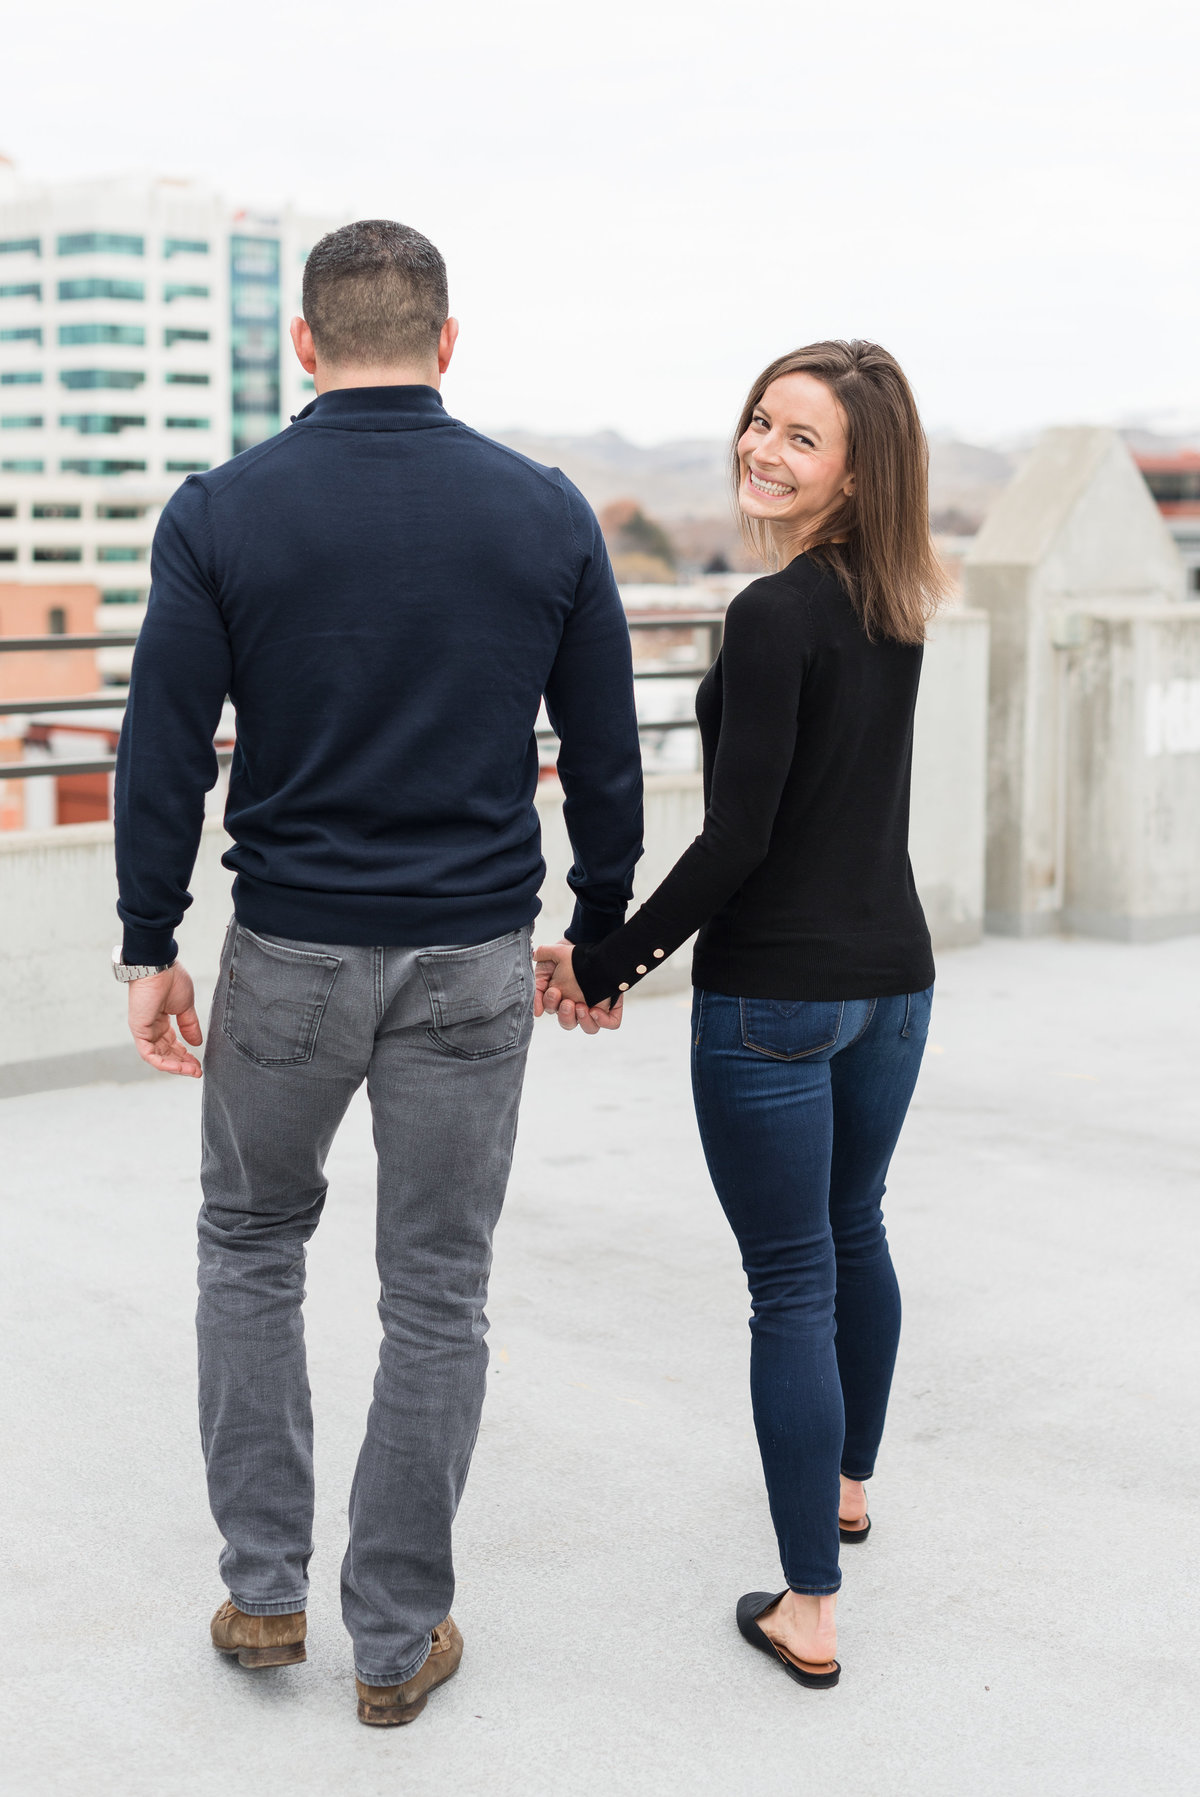 A Winter Downtown Boise Rooftop Engagement Shoot 007